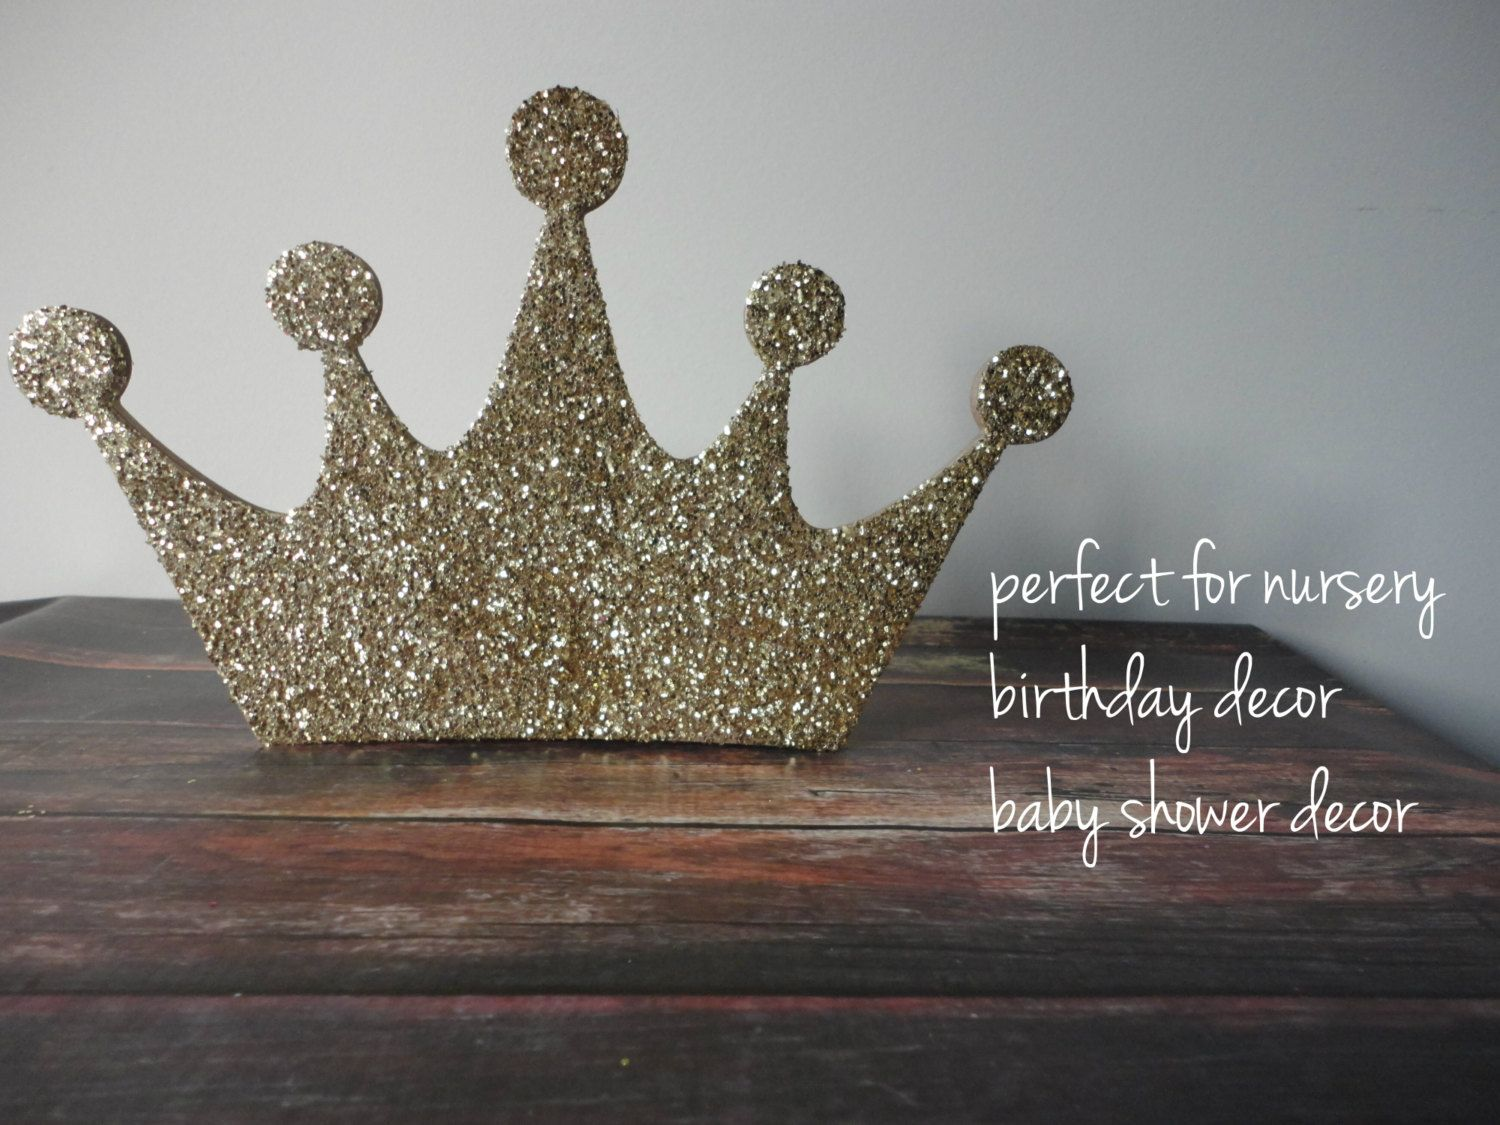 Gold glitter crown gold glitter crown decor birthday party decor gold glitter crown gold glitter crown decor birthday party decor nursery decor amipublicfo Image collections